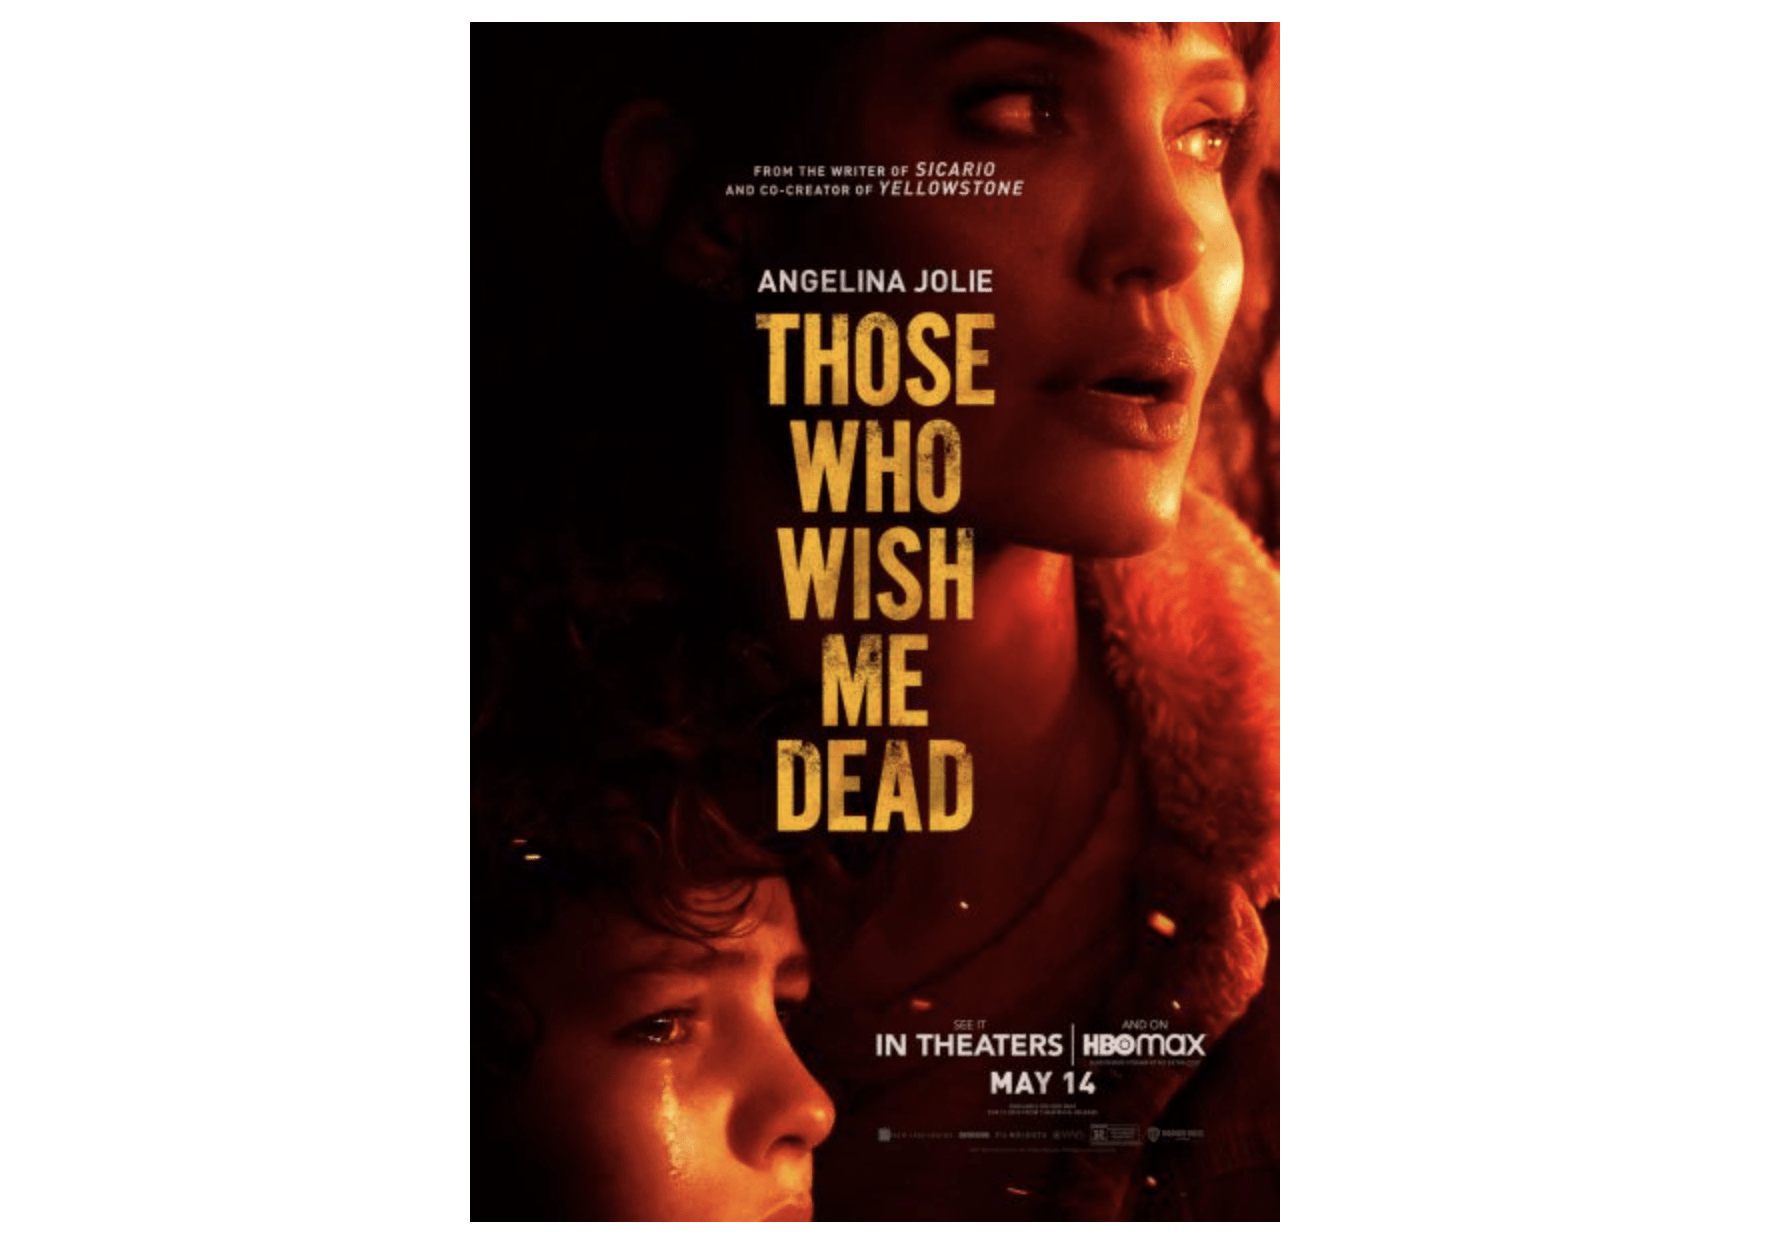 Watch the Trailer for 'Those Who Wish Me Dead' starring Angelina Jolie, In  Theaters and on HBO MAX on May 14th | Entertainment Rocks